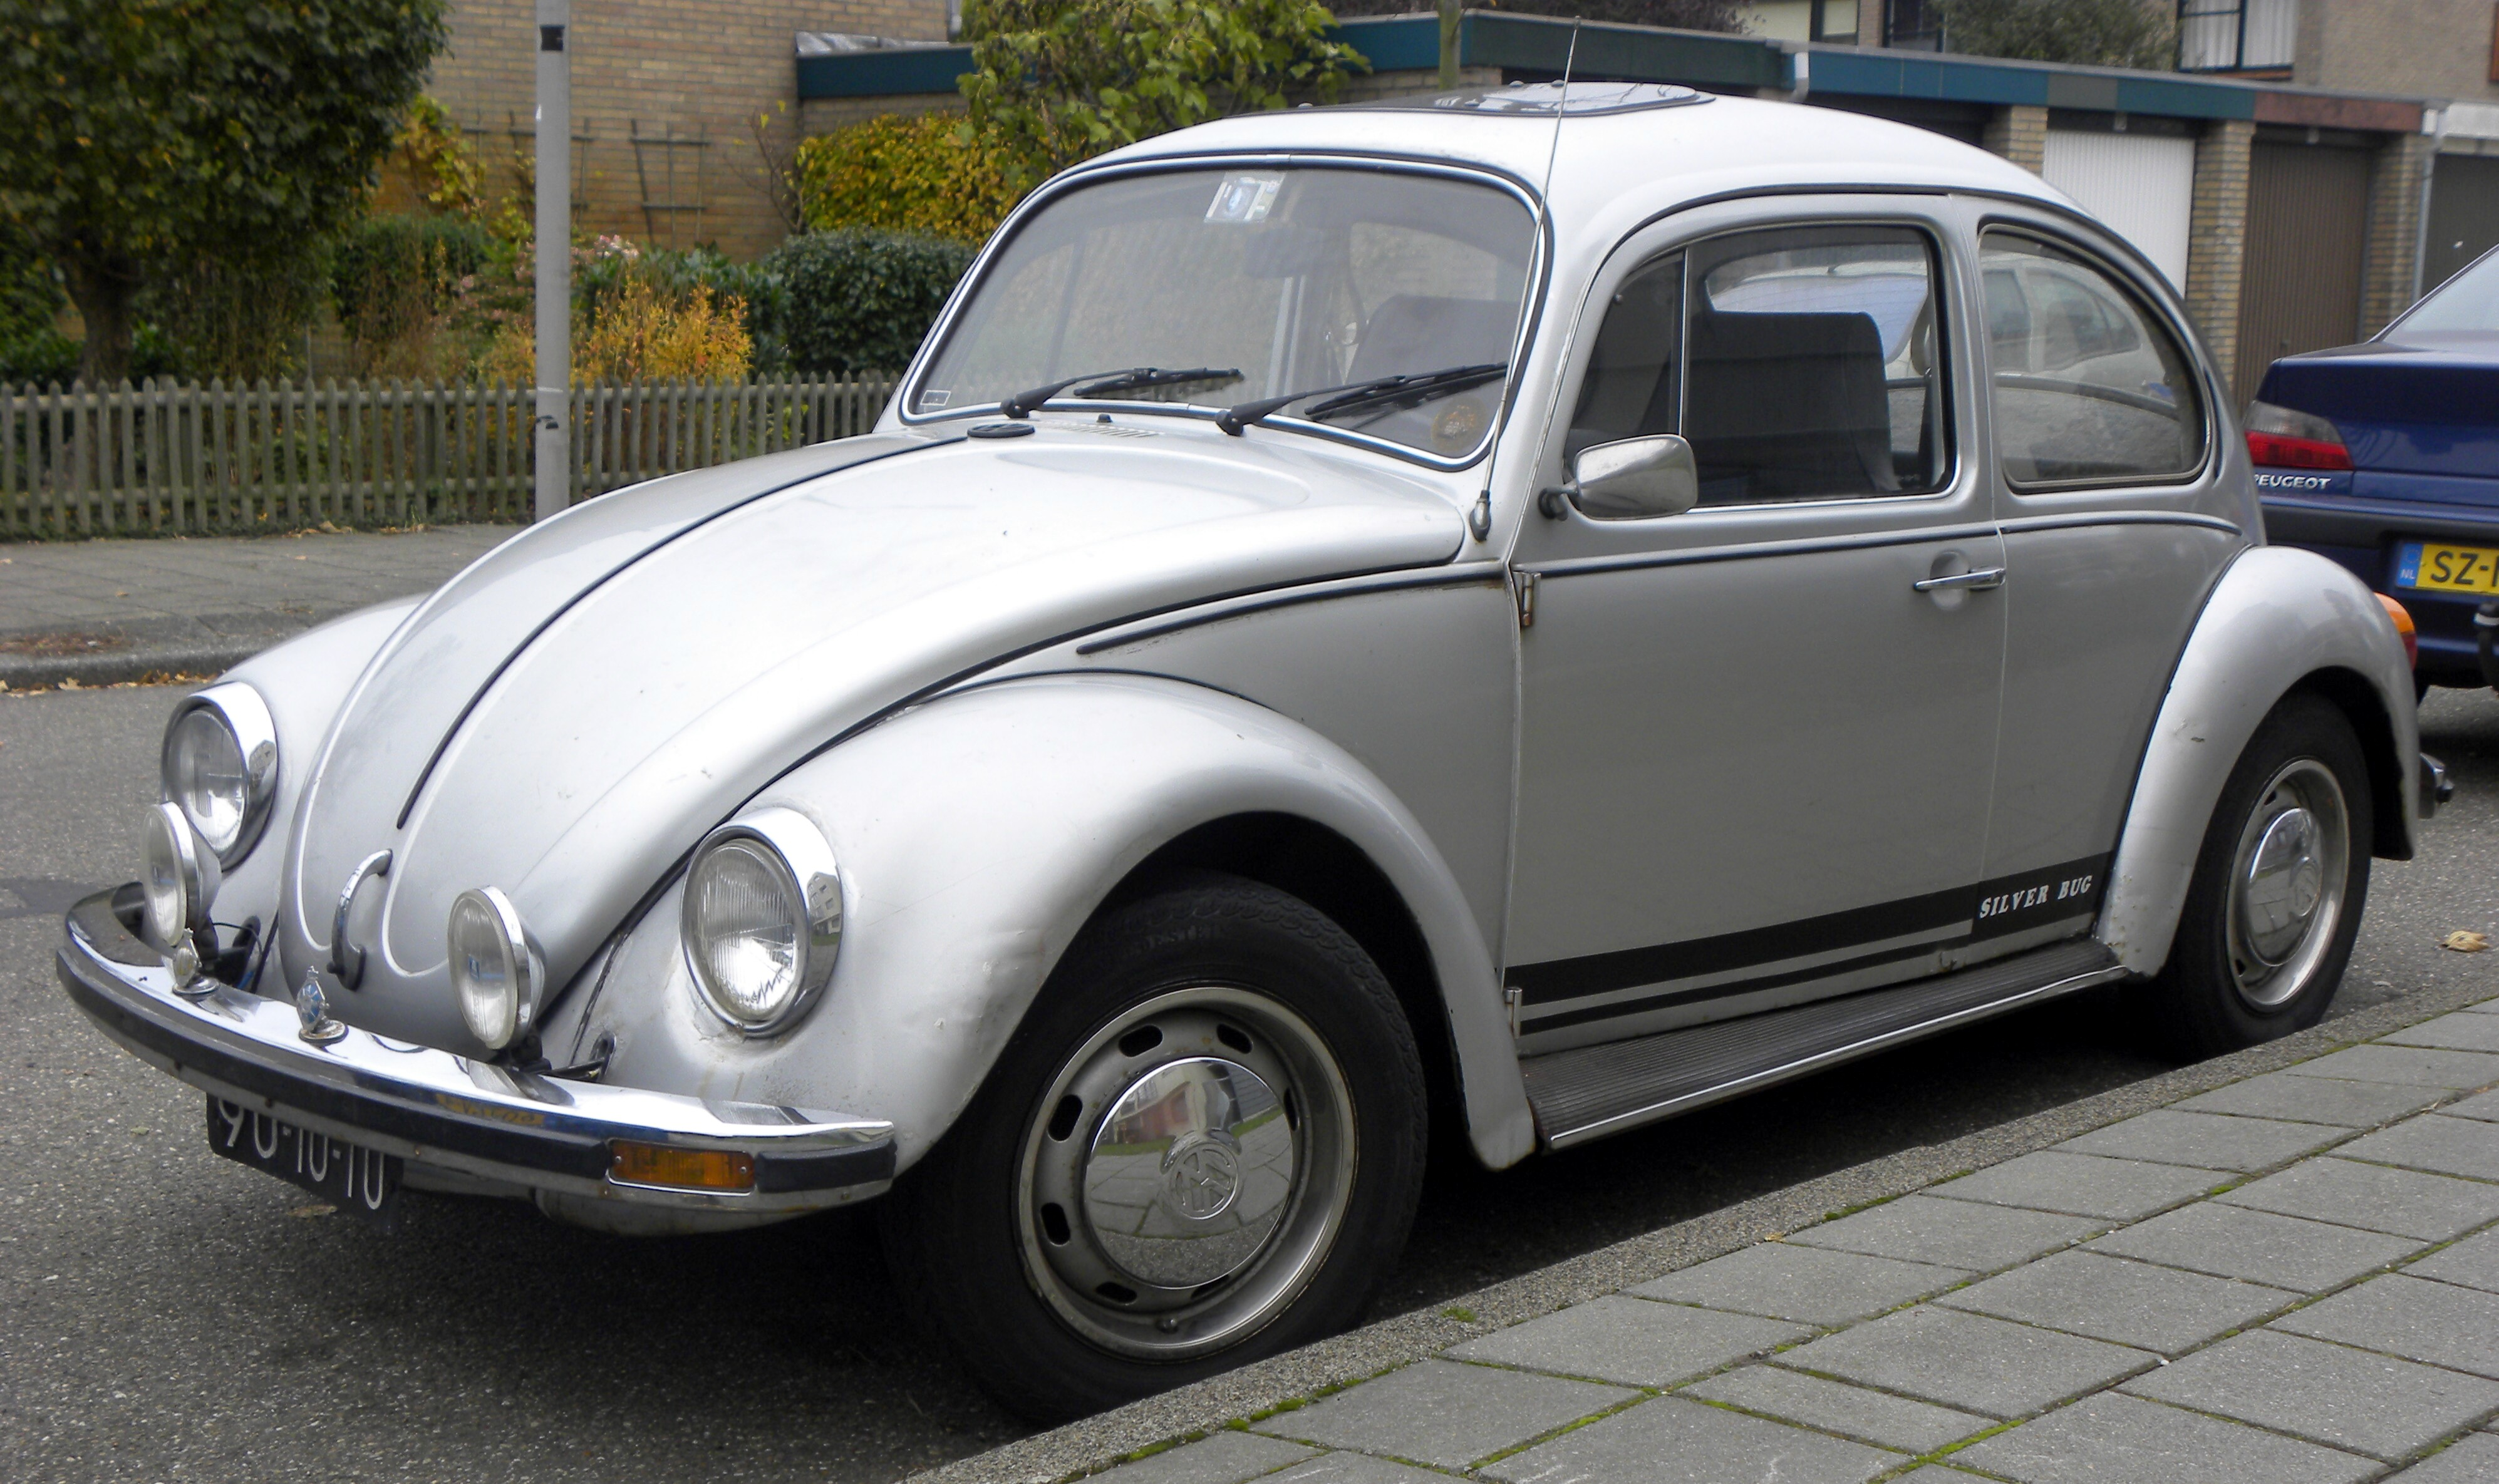 Vw Cars For Sale Near Me